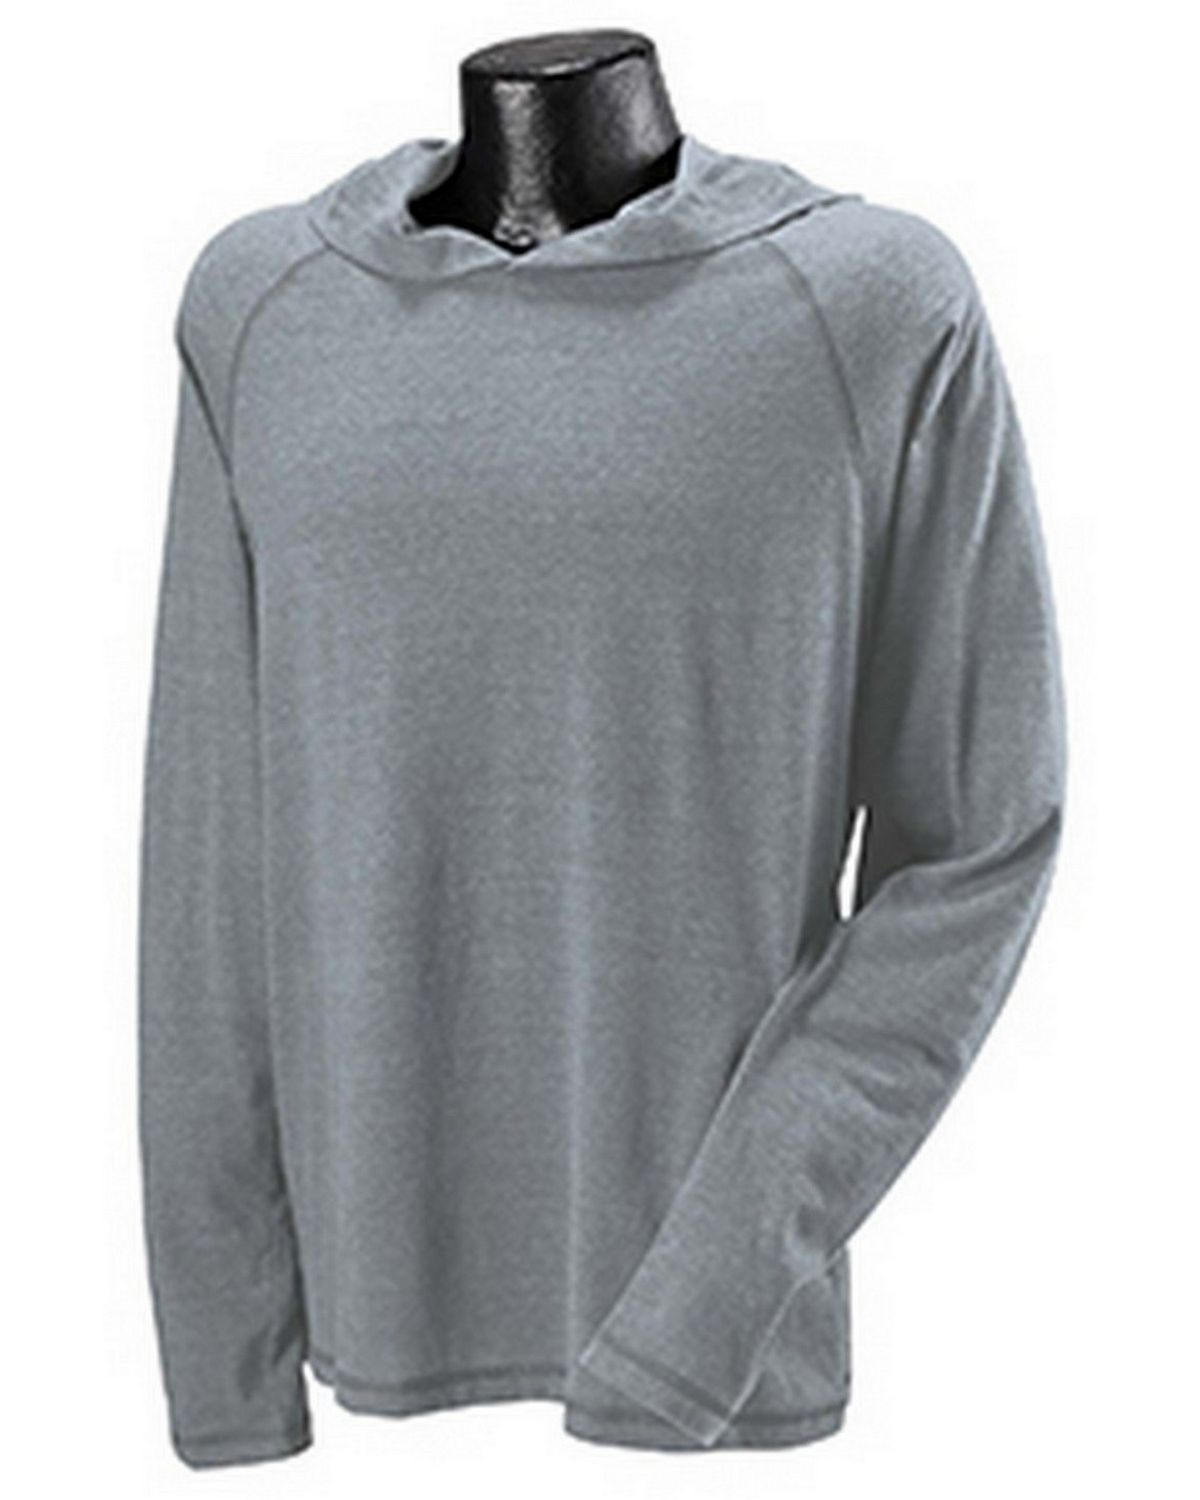 All Sport M3101Performance Triblend Jersey Long-Sleeve Hooded Pullover - Grey Heather Timberland - M M3101